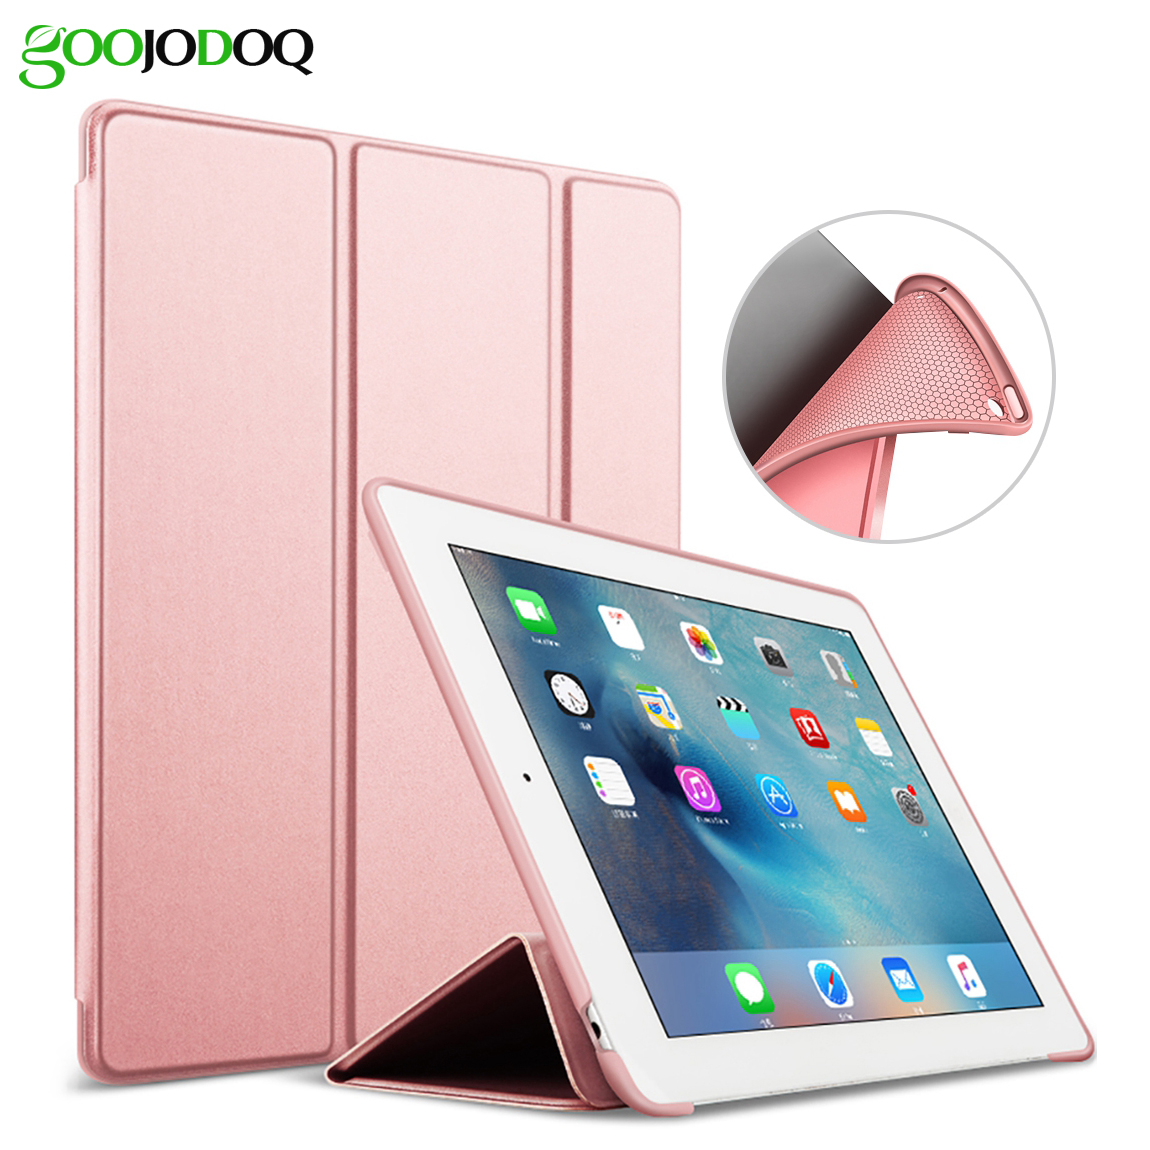 For iPad 9.7 2017 Case, PU Leather+Silicone Soft Back Smart Cover A1822 A1823 Coque for New iPad 2017 Case 9.7 inch Auto Wake for ipad mini4 cover high quality soft tpu rubber back case for ipad mini 4 silicone back cover semi transparent case shell skin